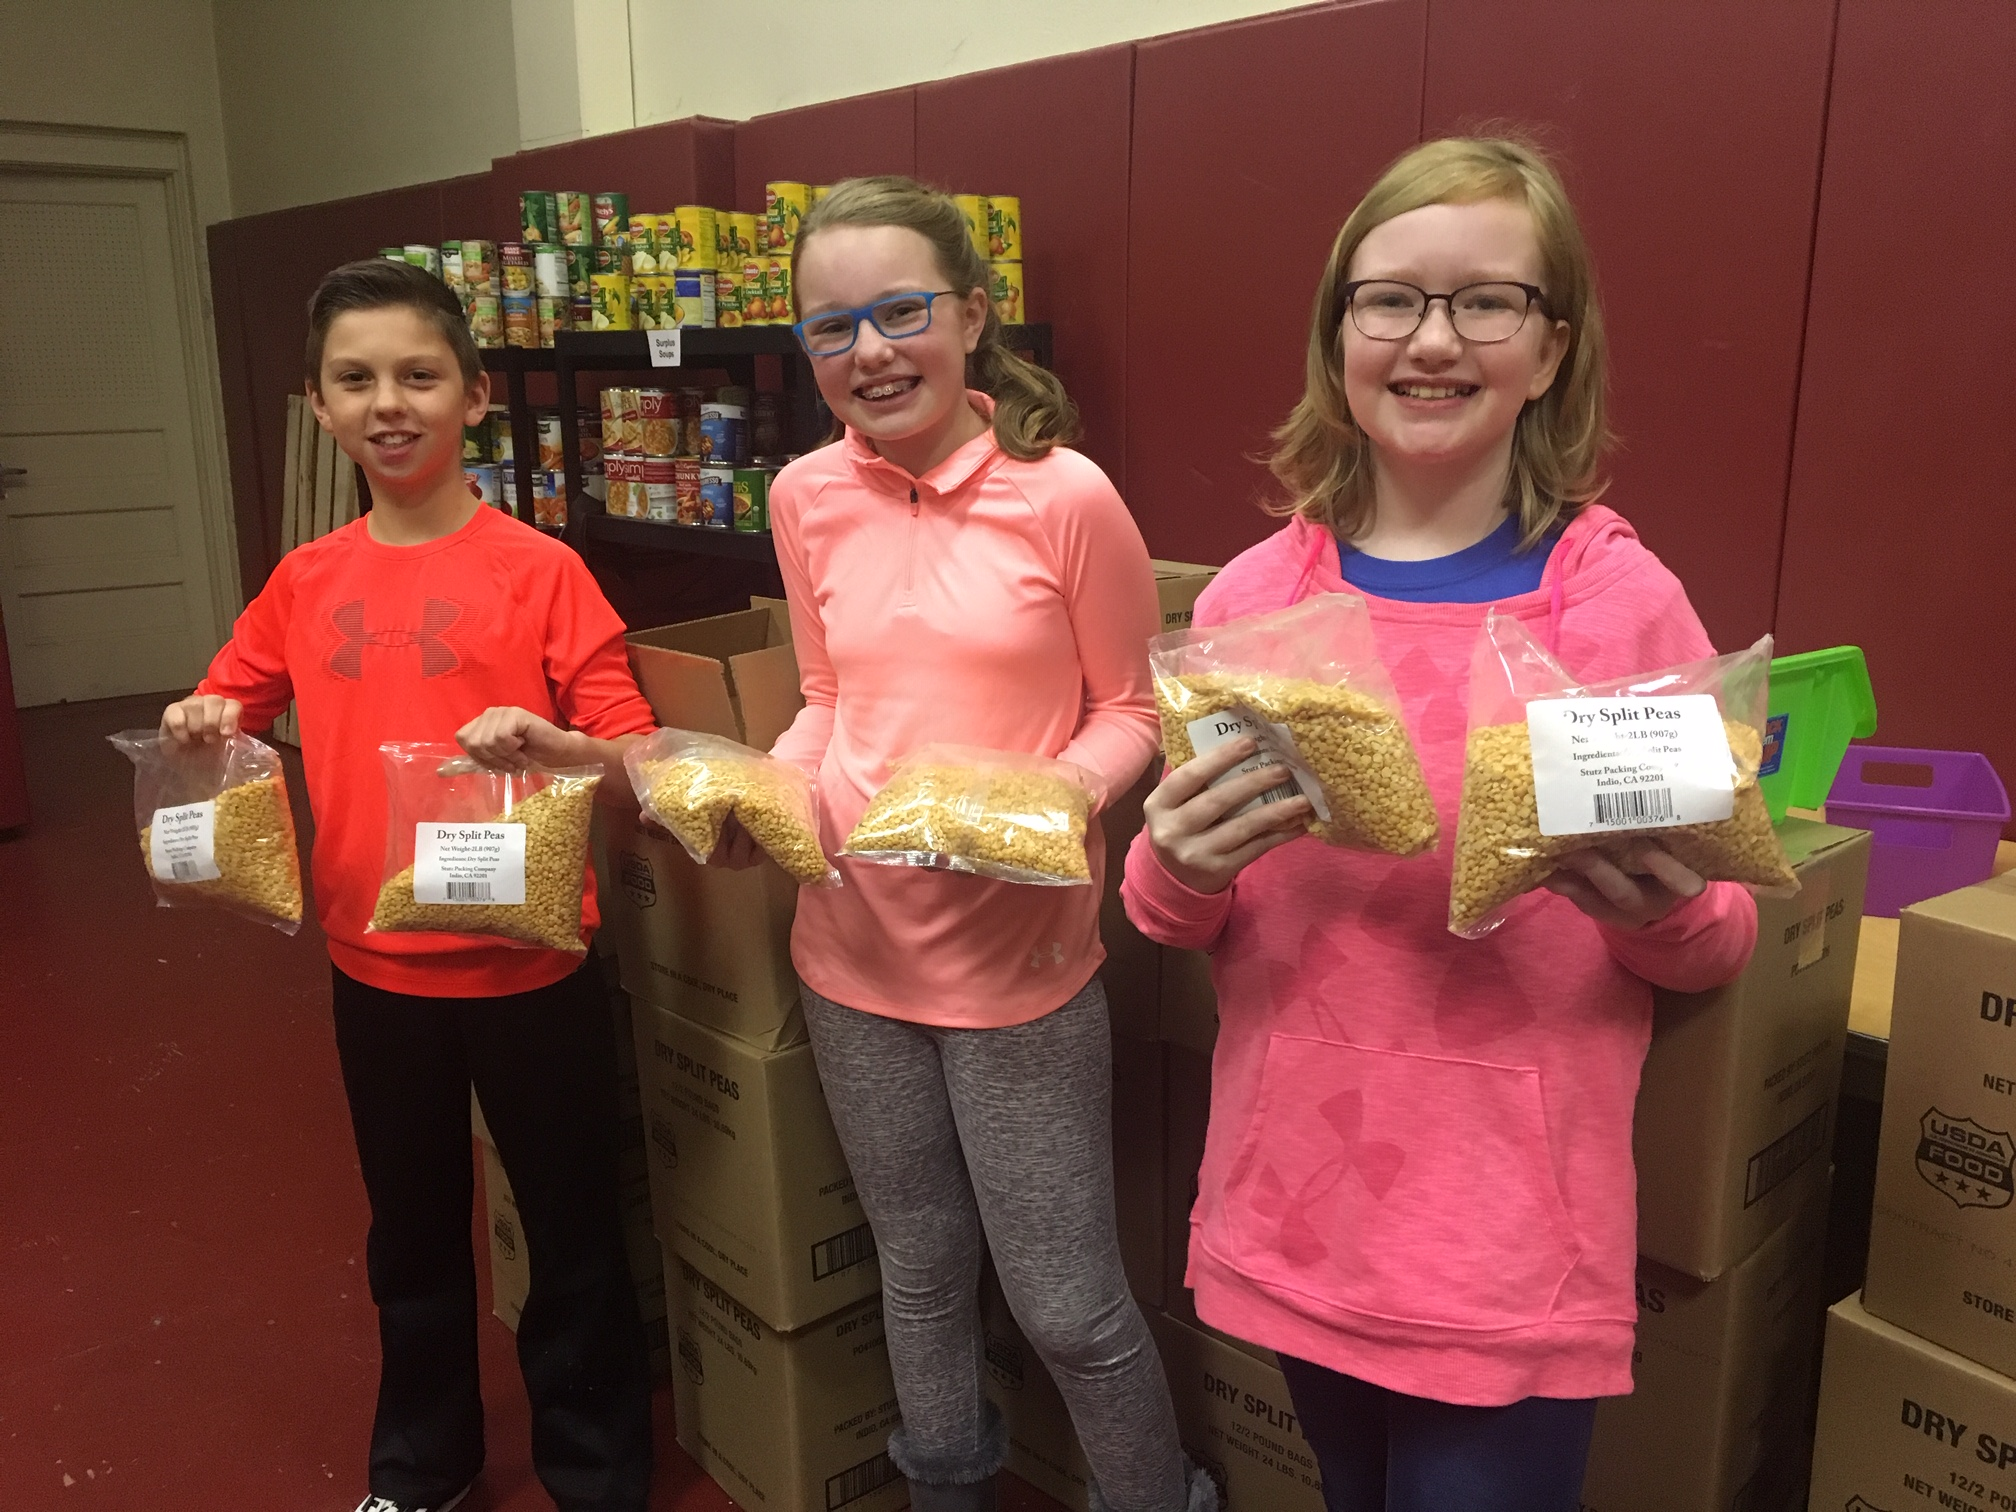 three students show bags of split peas used for recipes